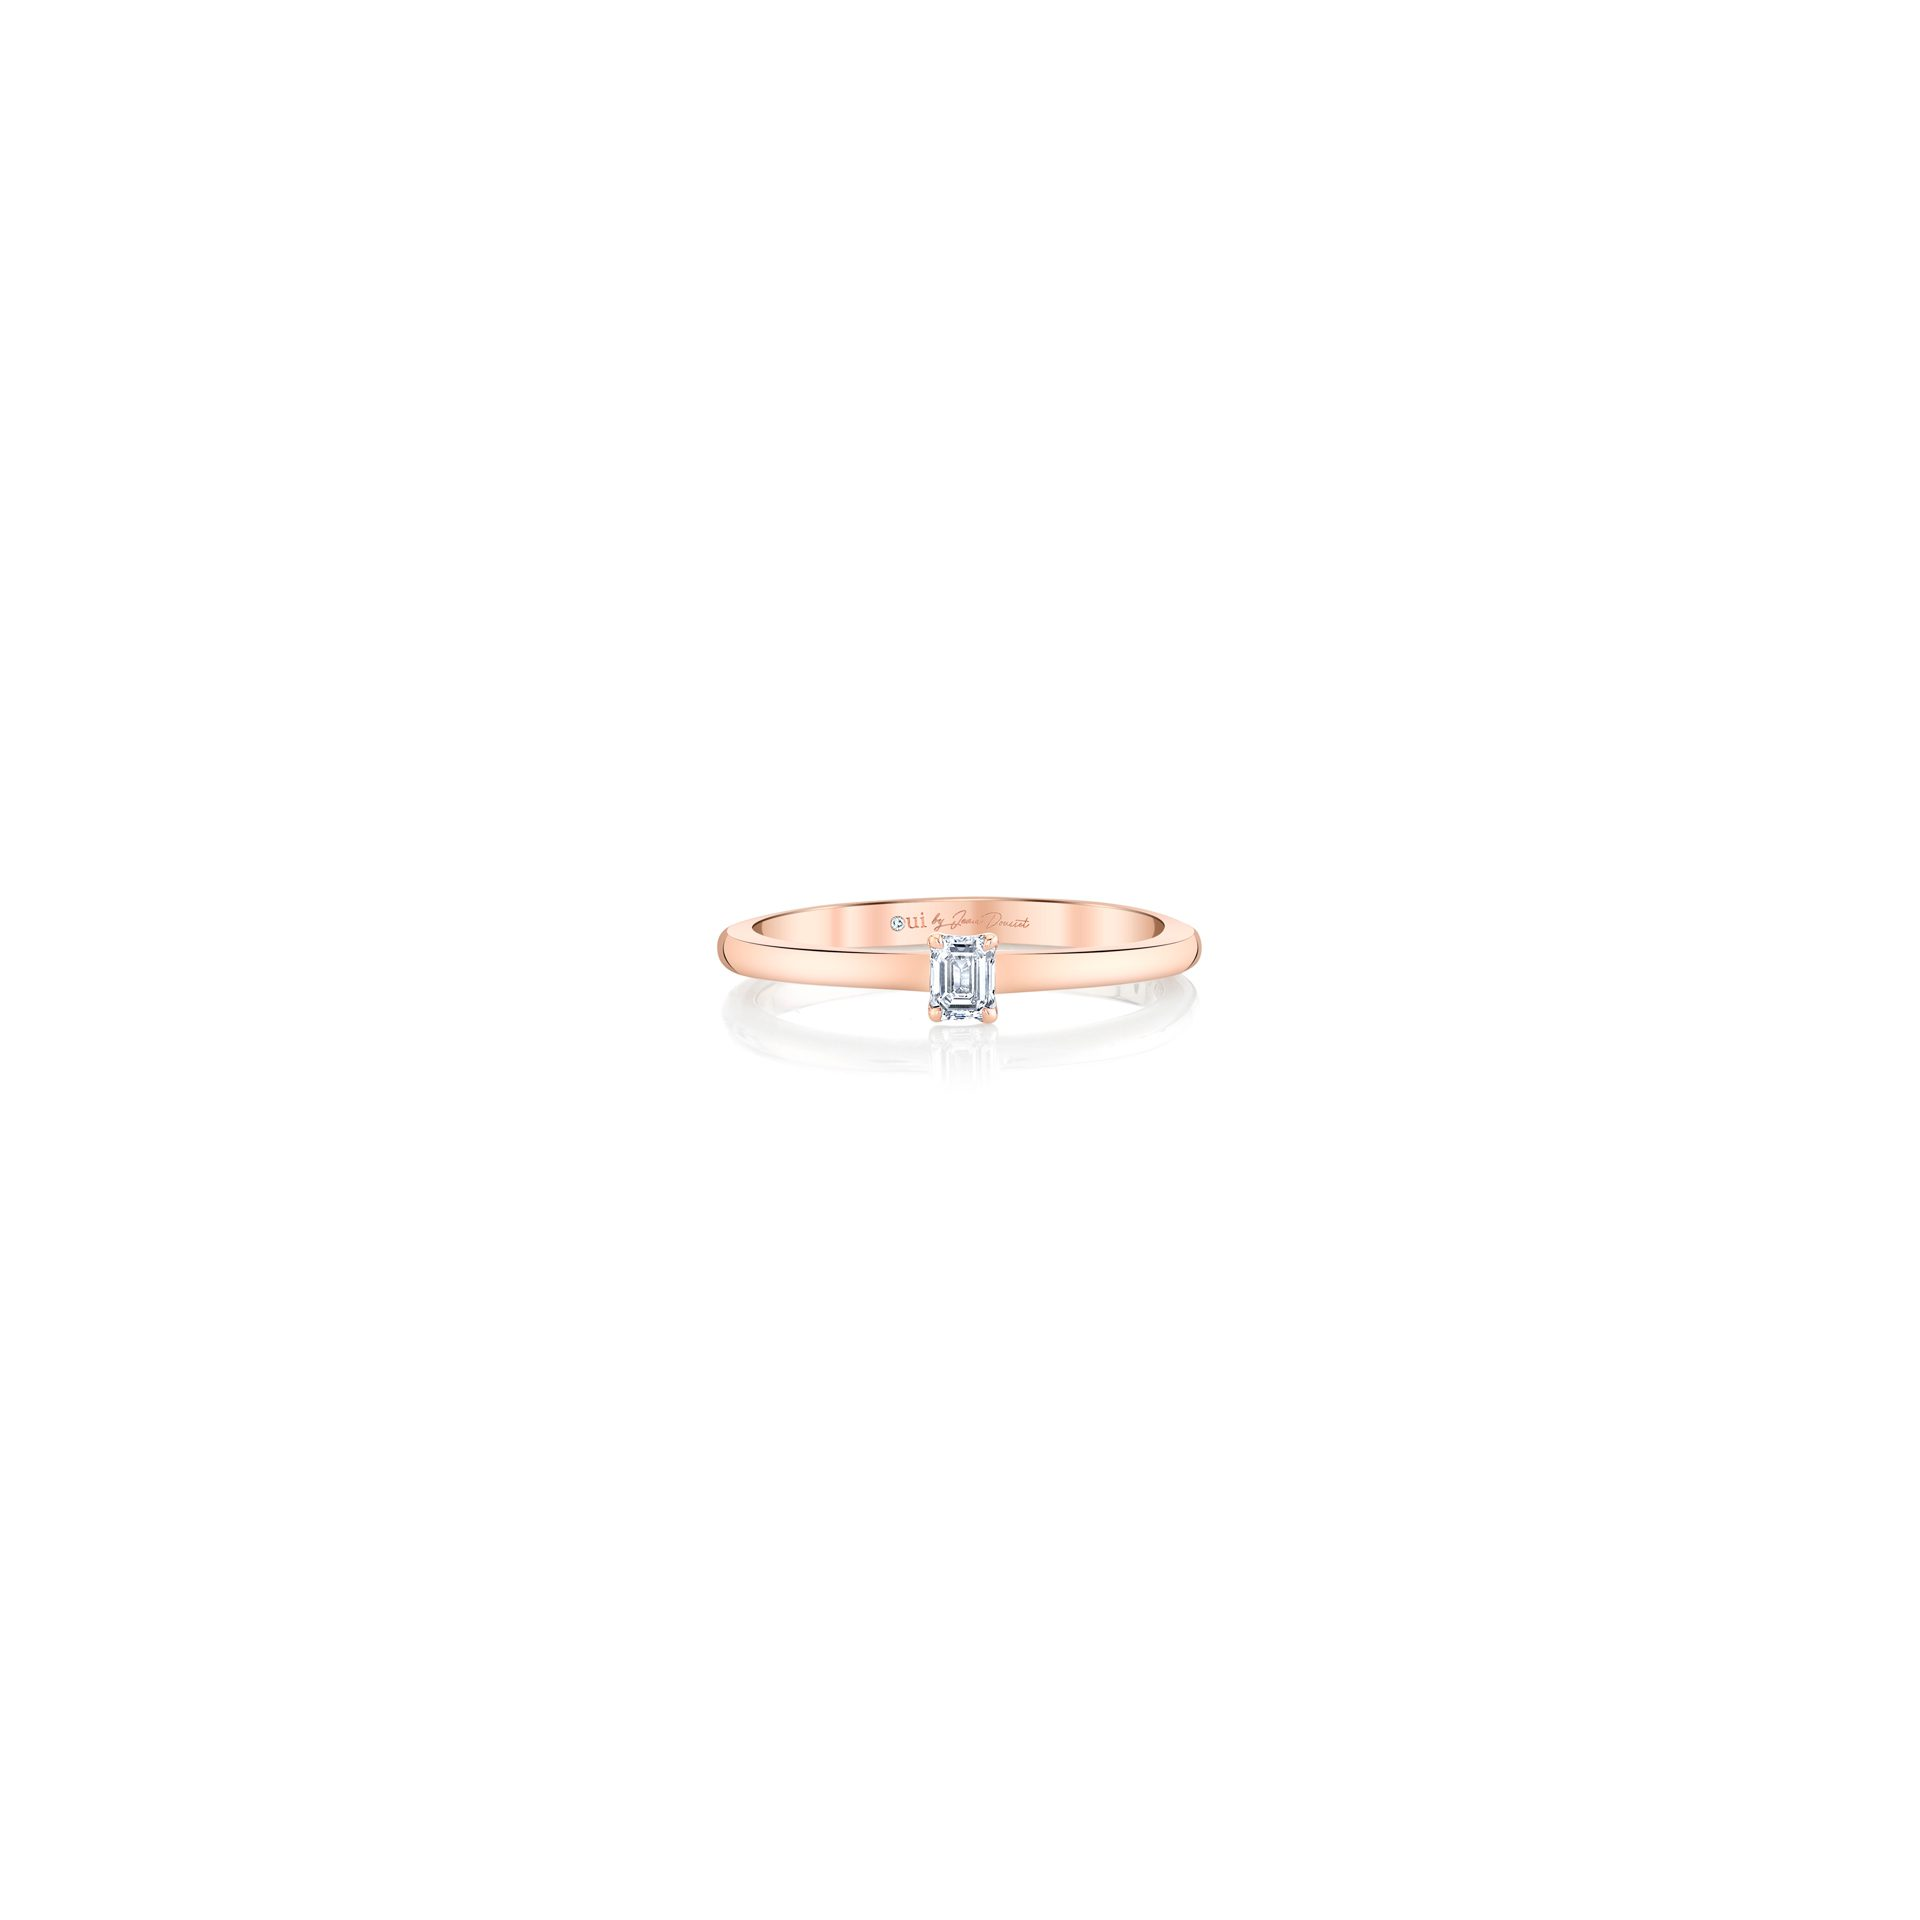 La Petite Emerald Diamond Wedding Band in 18k Rose Gold Front View by Oui by Jean Dousset